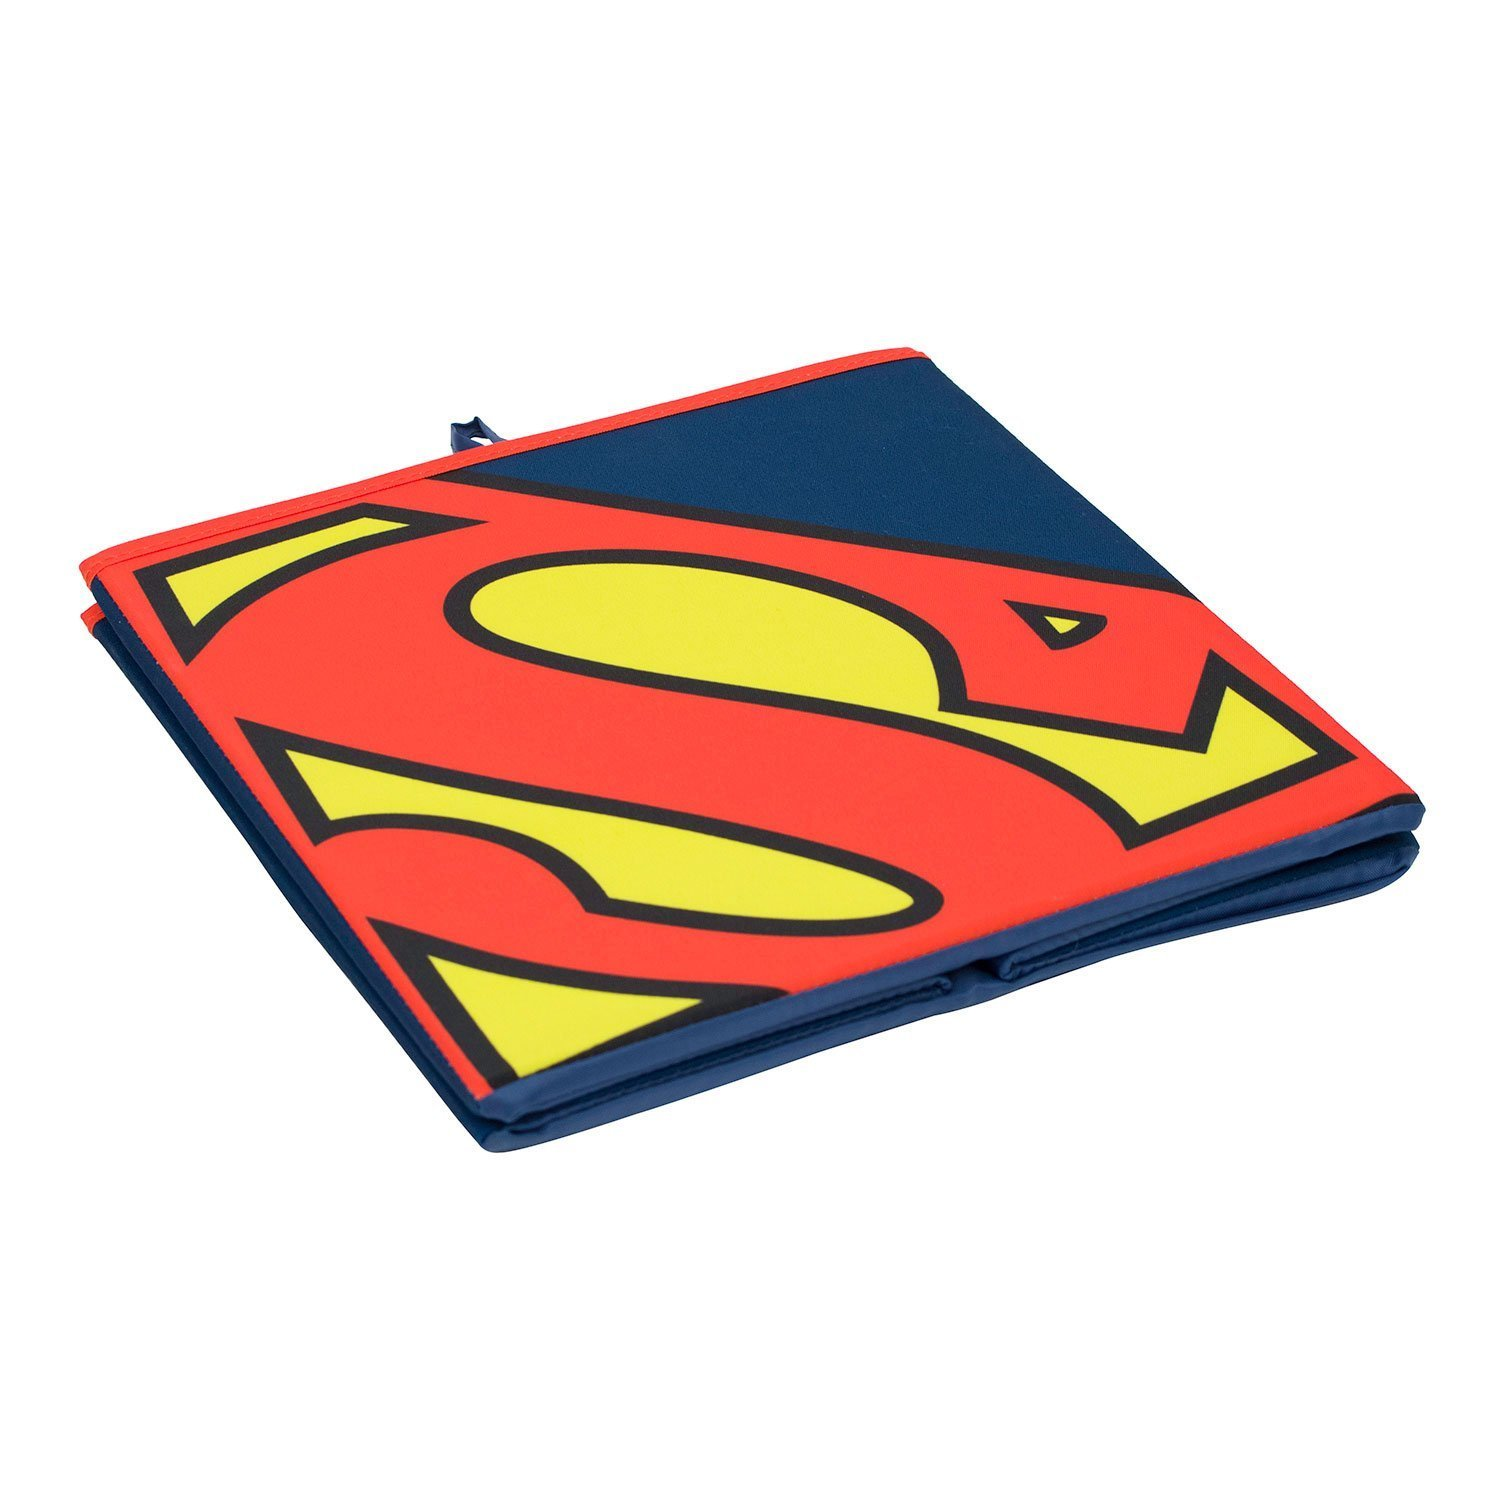 Everything Mary Superman Collapsible Storage Bin by DC Comics - Cube Organizer for Closet, Kids Bedroom Box, Playroom Chest - Foldable Home Decor Basket Container with Strong Handles and Design by Everything Mary (Image #3)